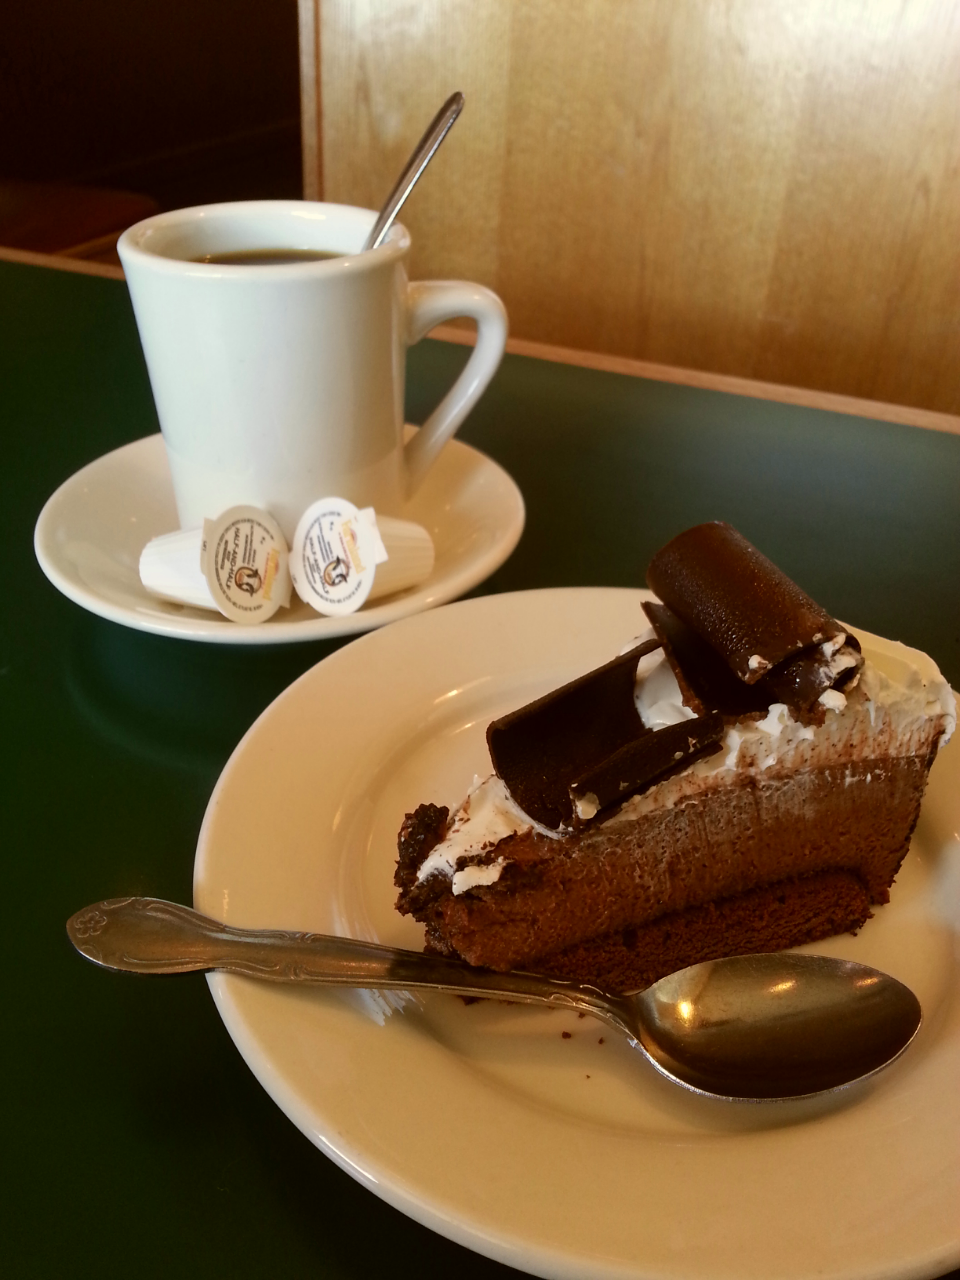 Copy of Copy of Copy of Copy of Copy of Copy of Copy of Copy of Chocolate Mousse Cake and Coffee!